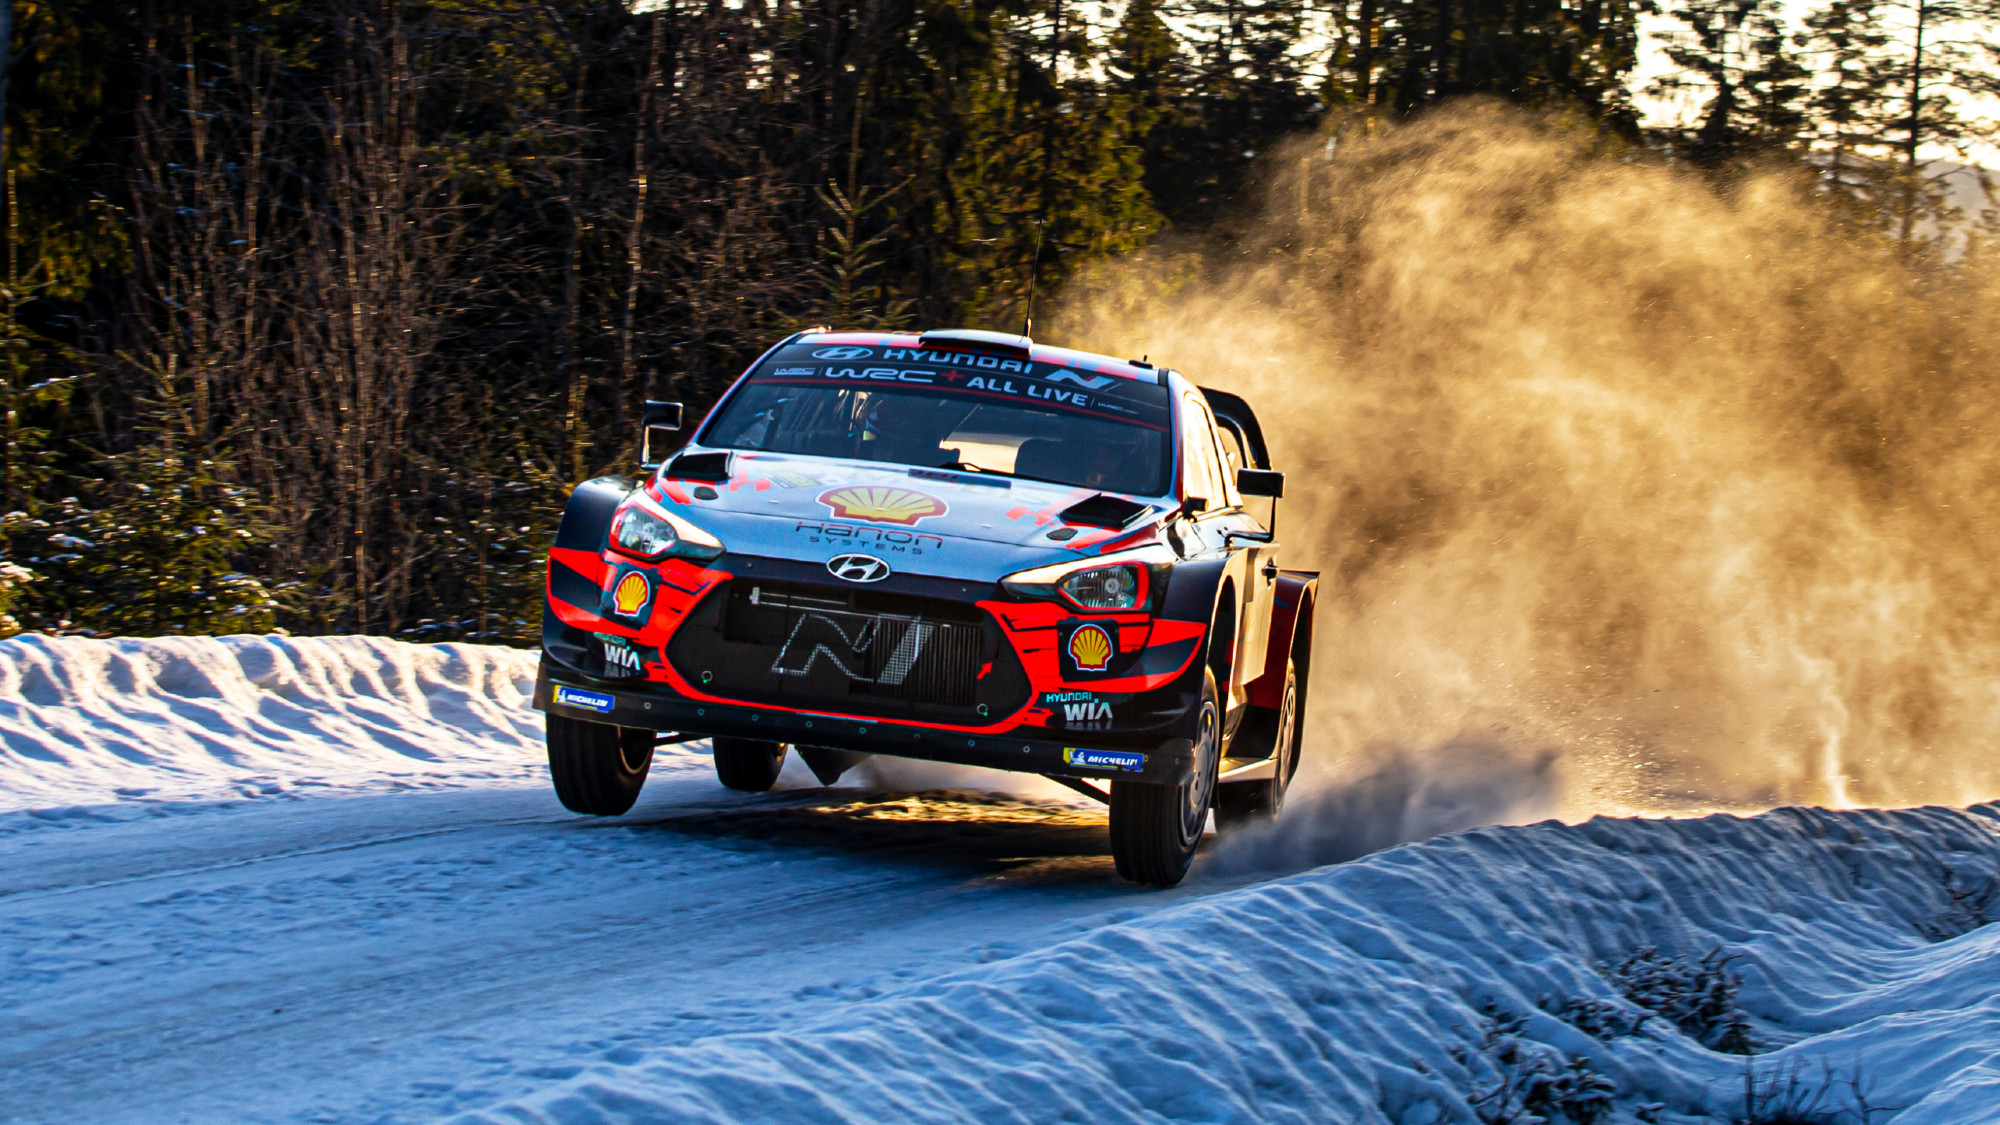 Thierry Neuville, Rally Sweden 2020